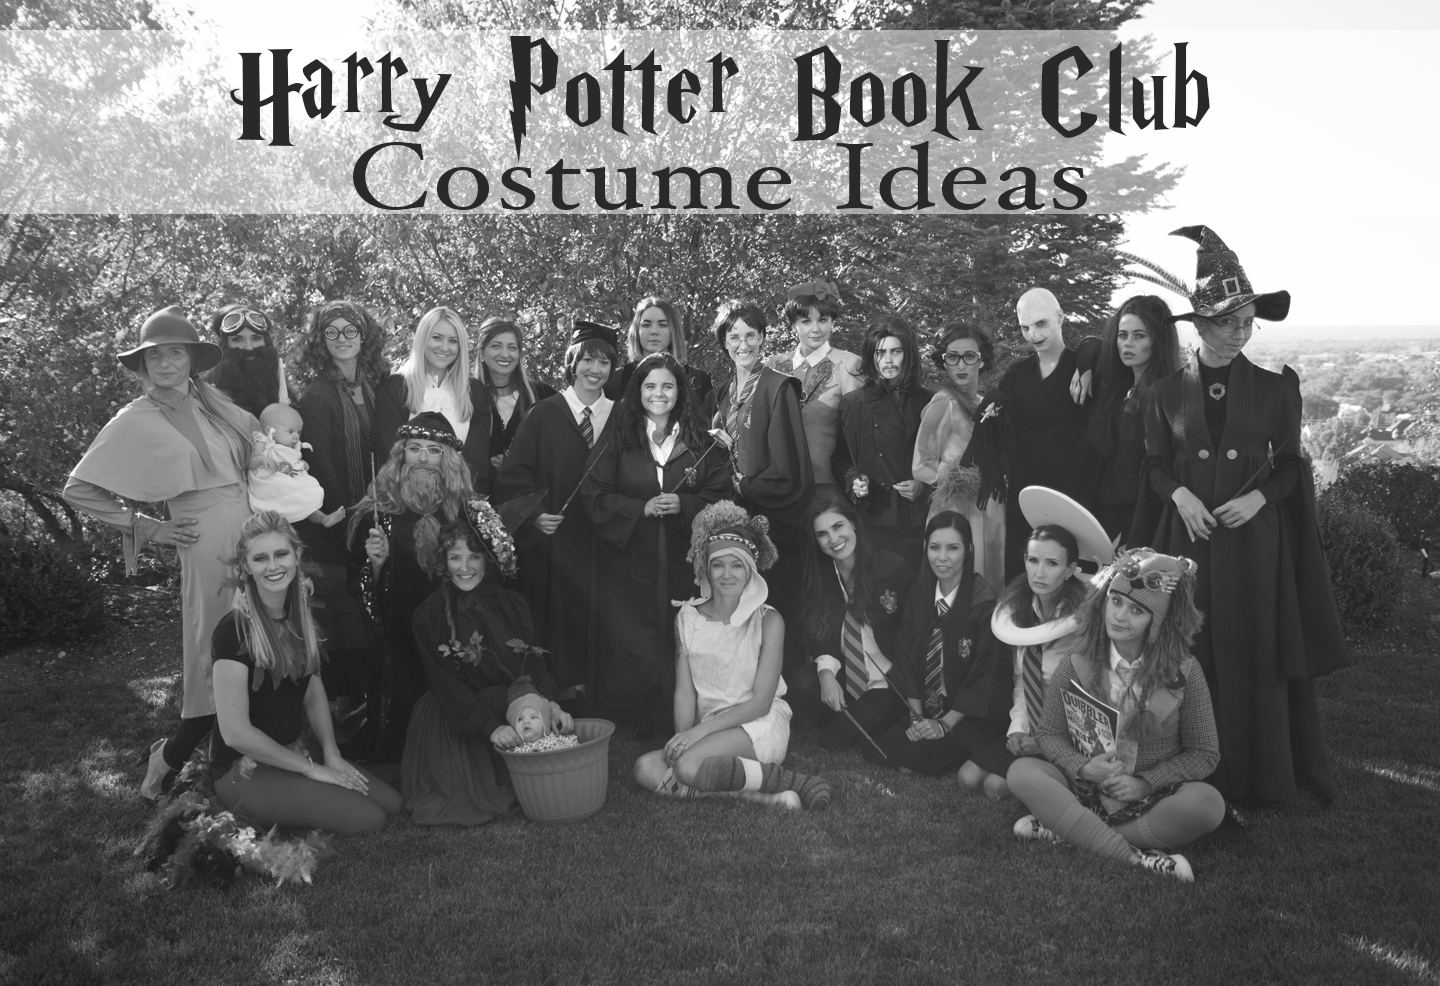 Harry Potter Book Club : Delicious reads harry potter book club costume ideas